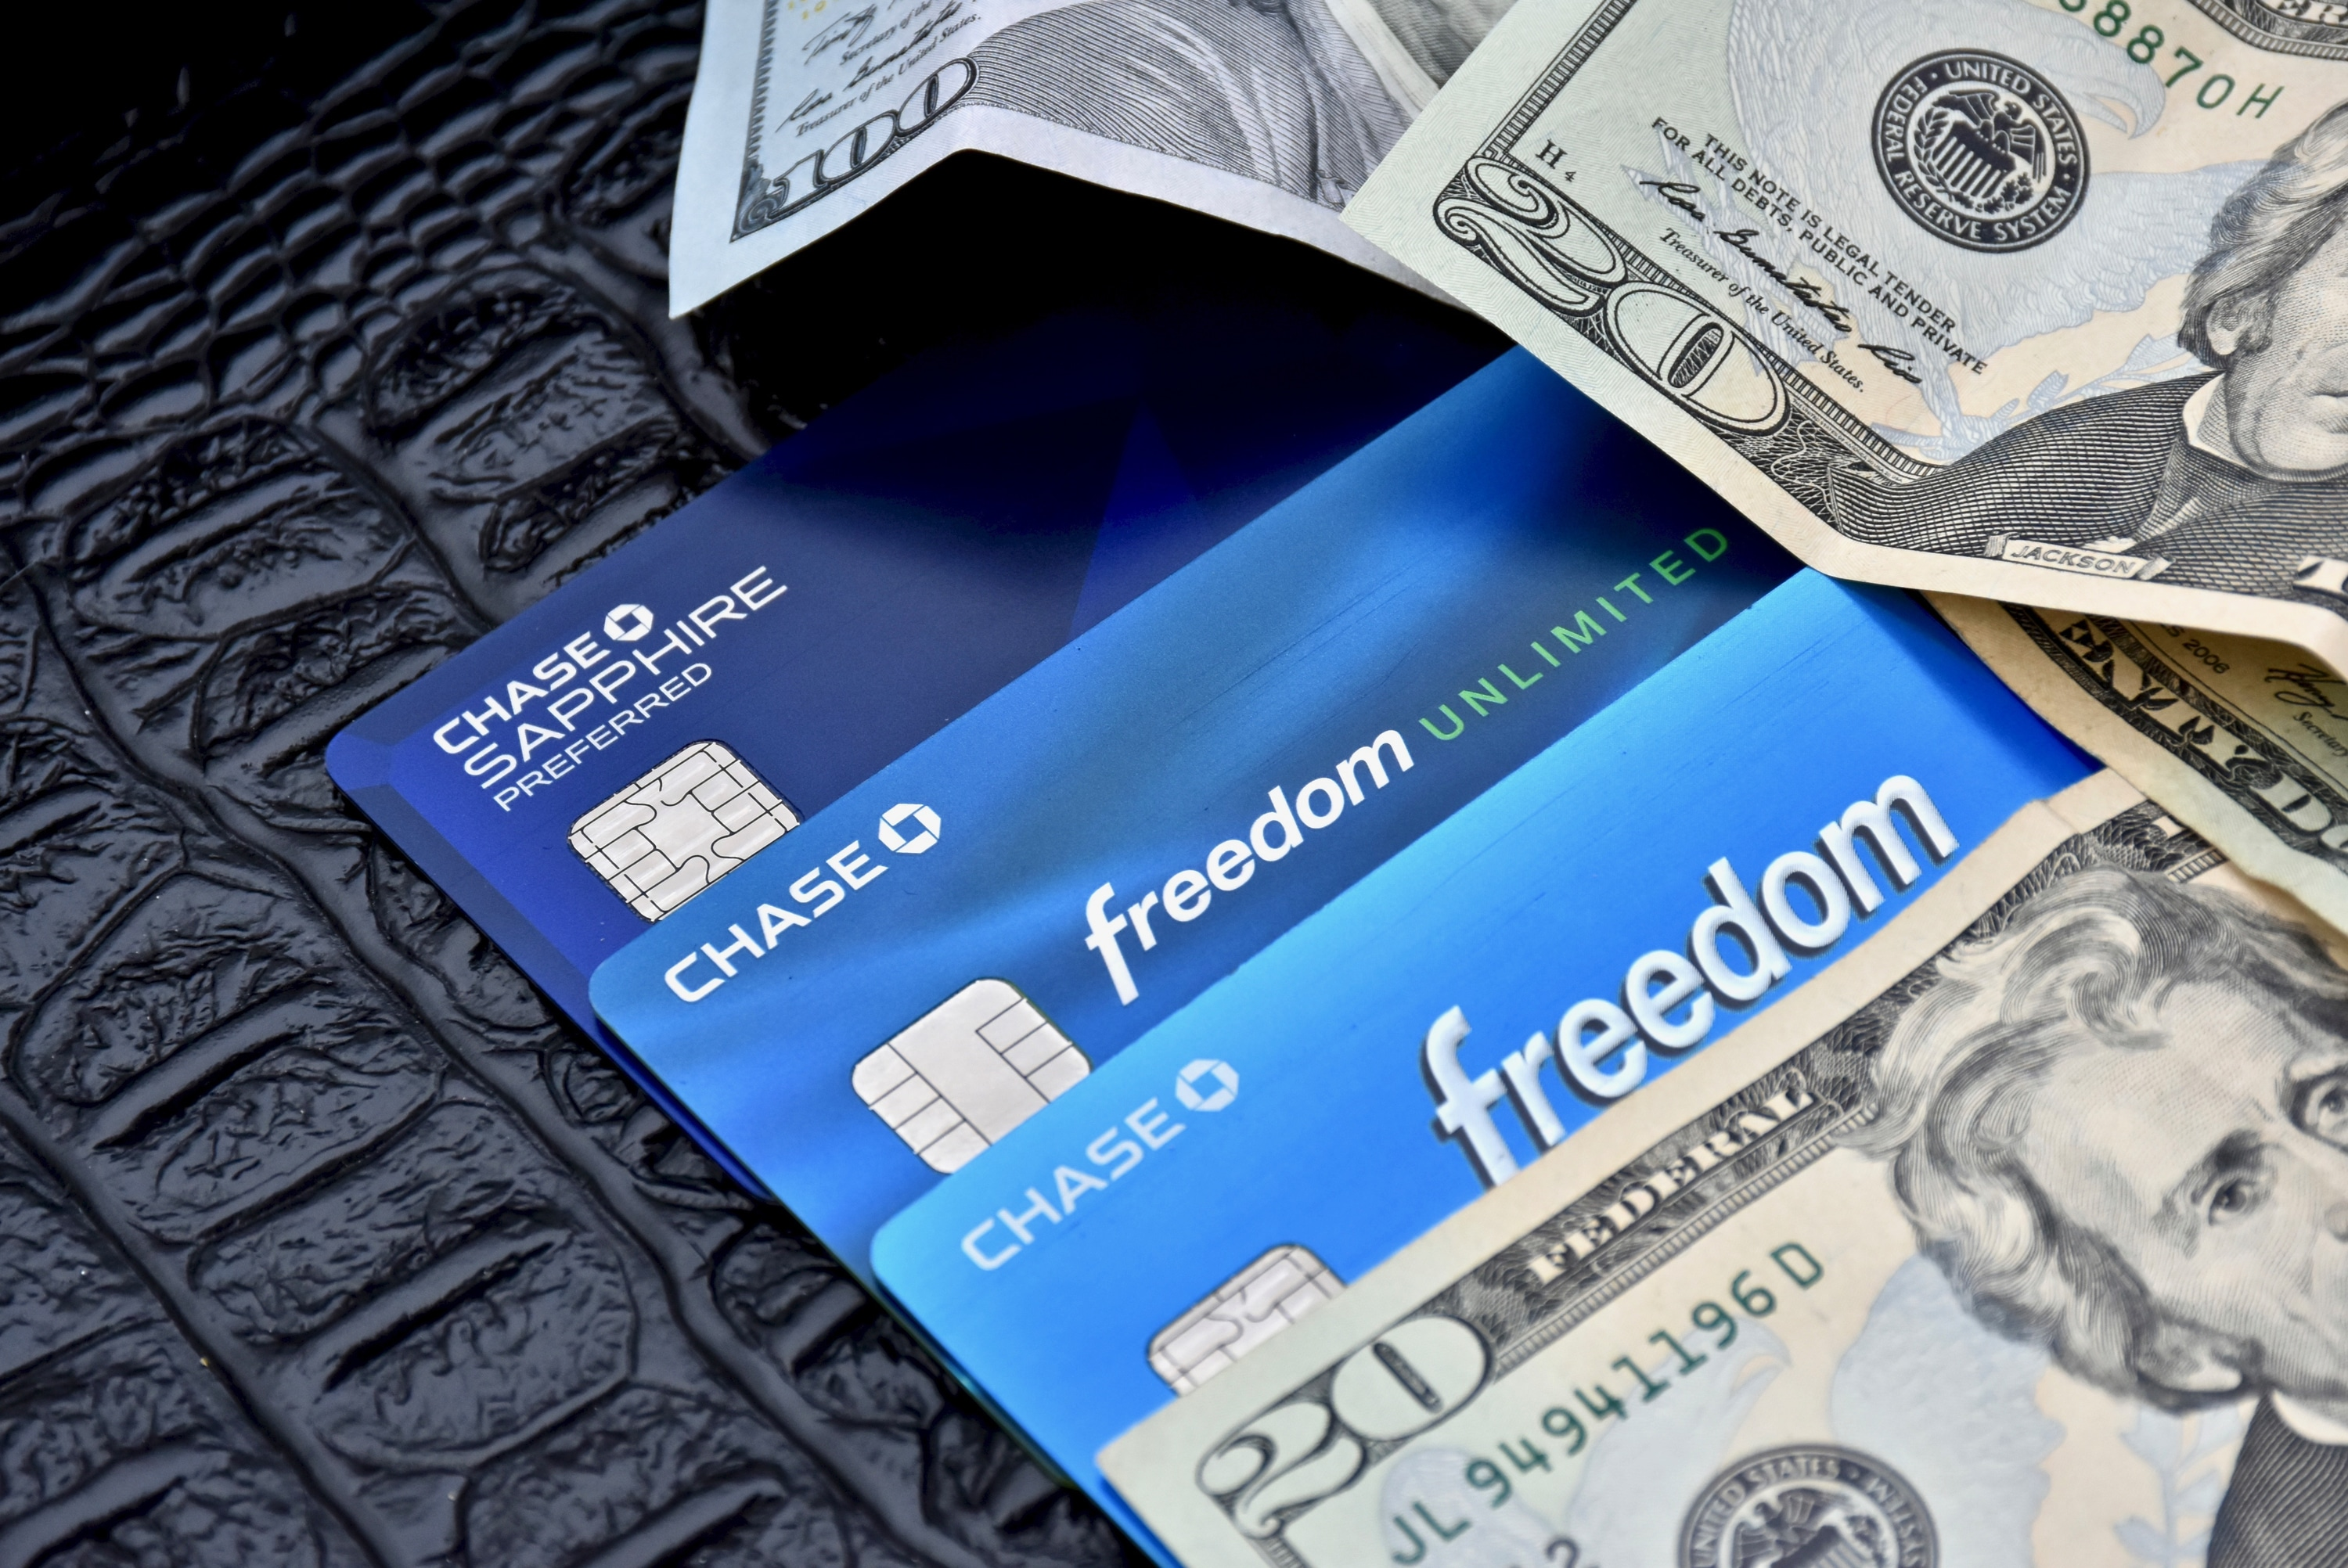 Chase Freedom Calendar 2022.Chase Freedom 5 Cash Back Categories This Quarter Calendar